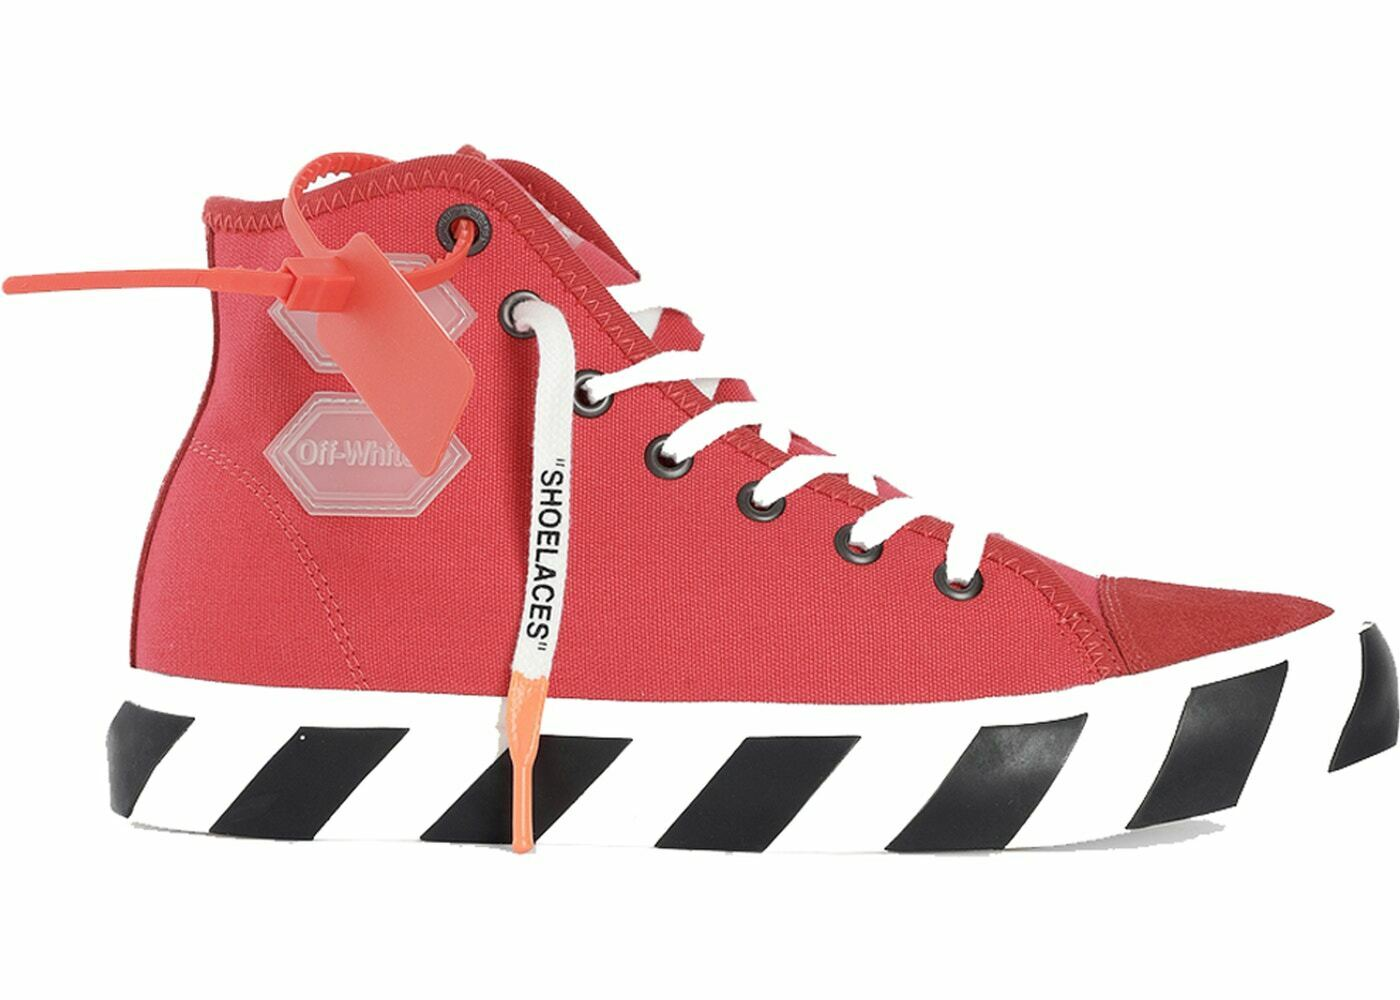 OFF-WHITE Vulc Hi Top Red Size 10.5. SKU  OMIA110R19C21035-2098 Virgil Abloh